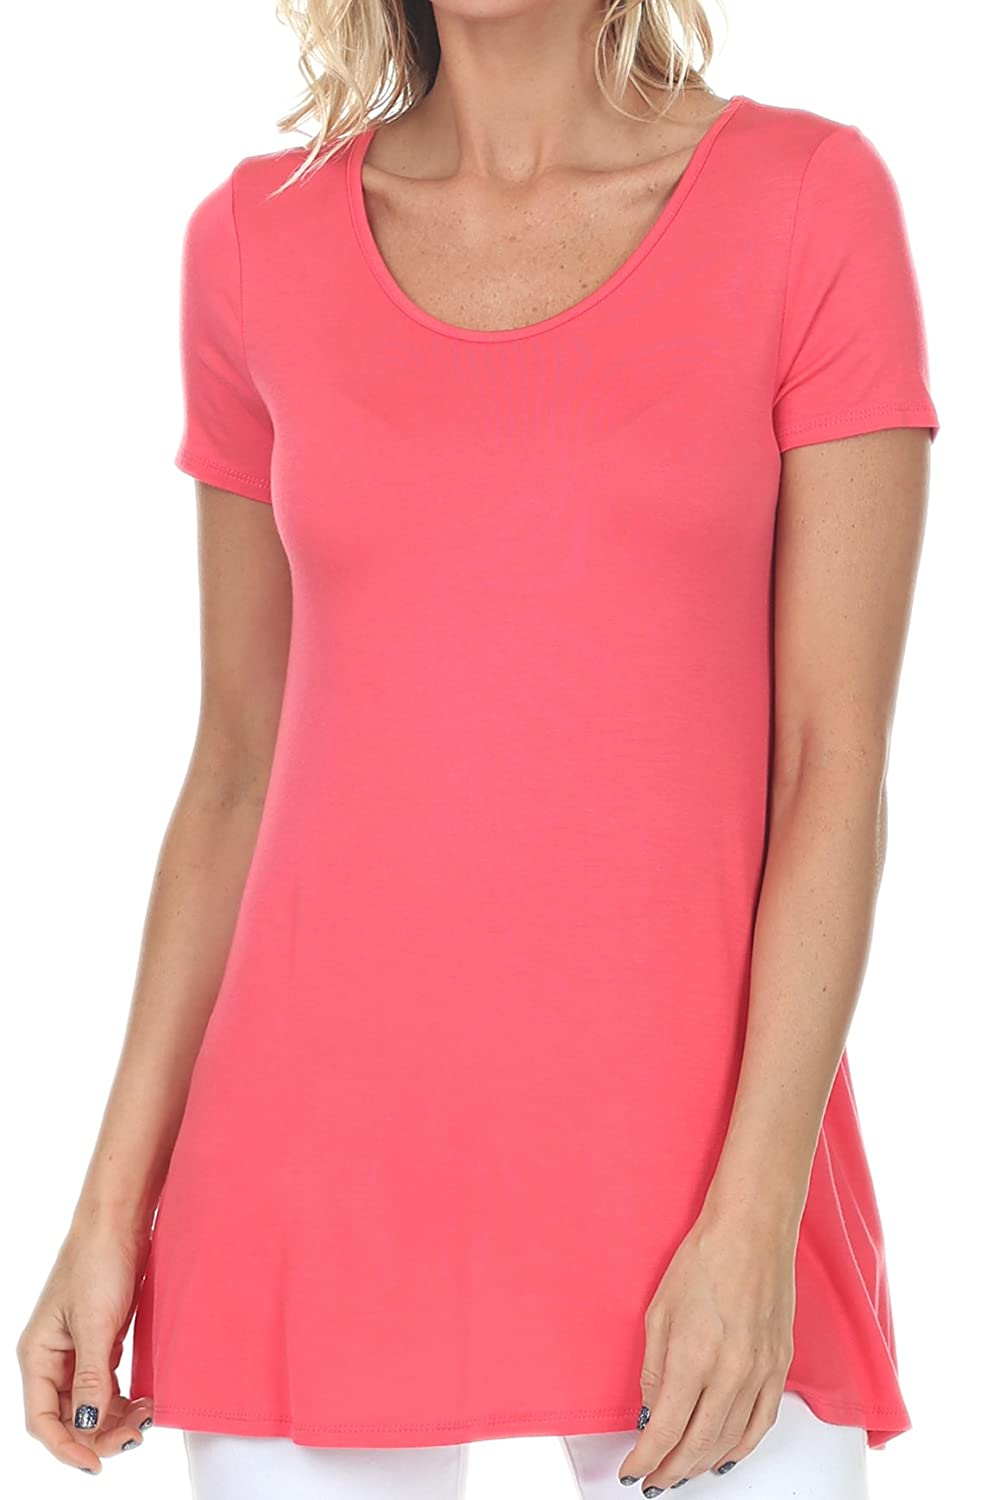 Coral coul J WT212 Women's Scoop Neck Short Sleeve Casual Plain Flowy Simple Swing Loose TShirt Dress Tunic Top